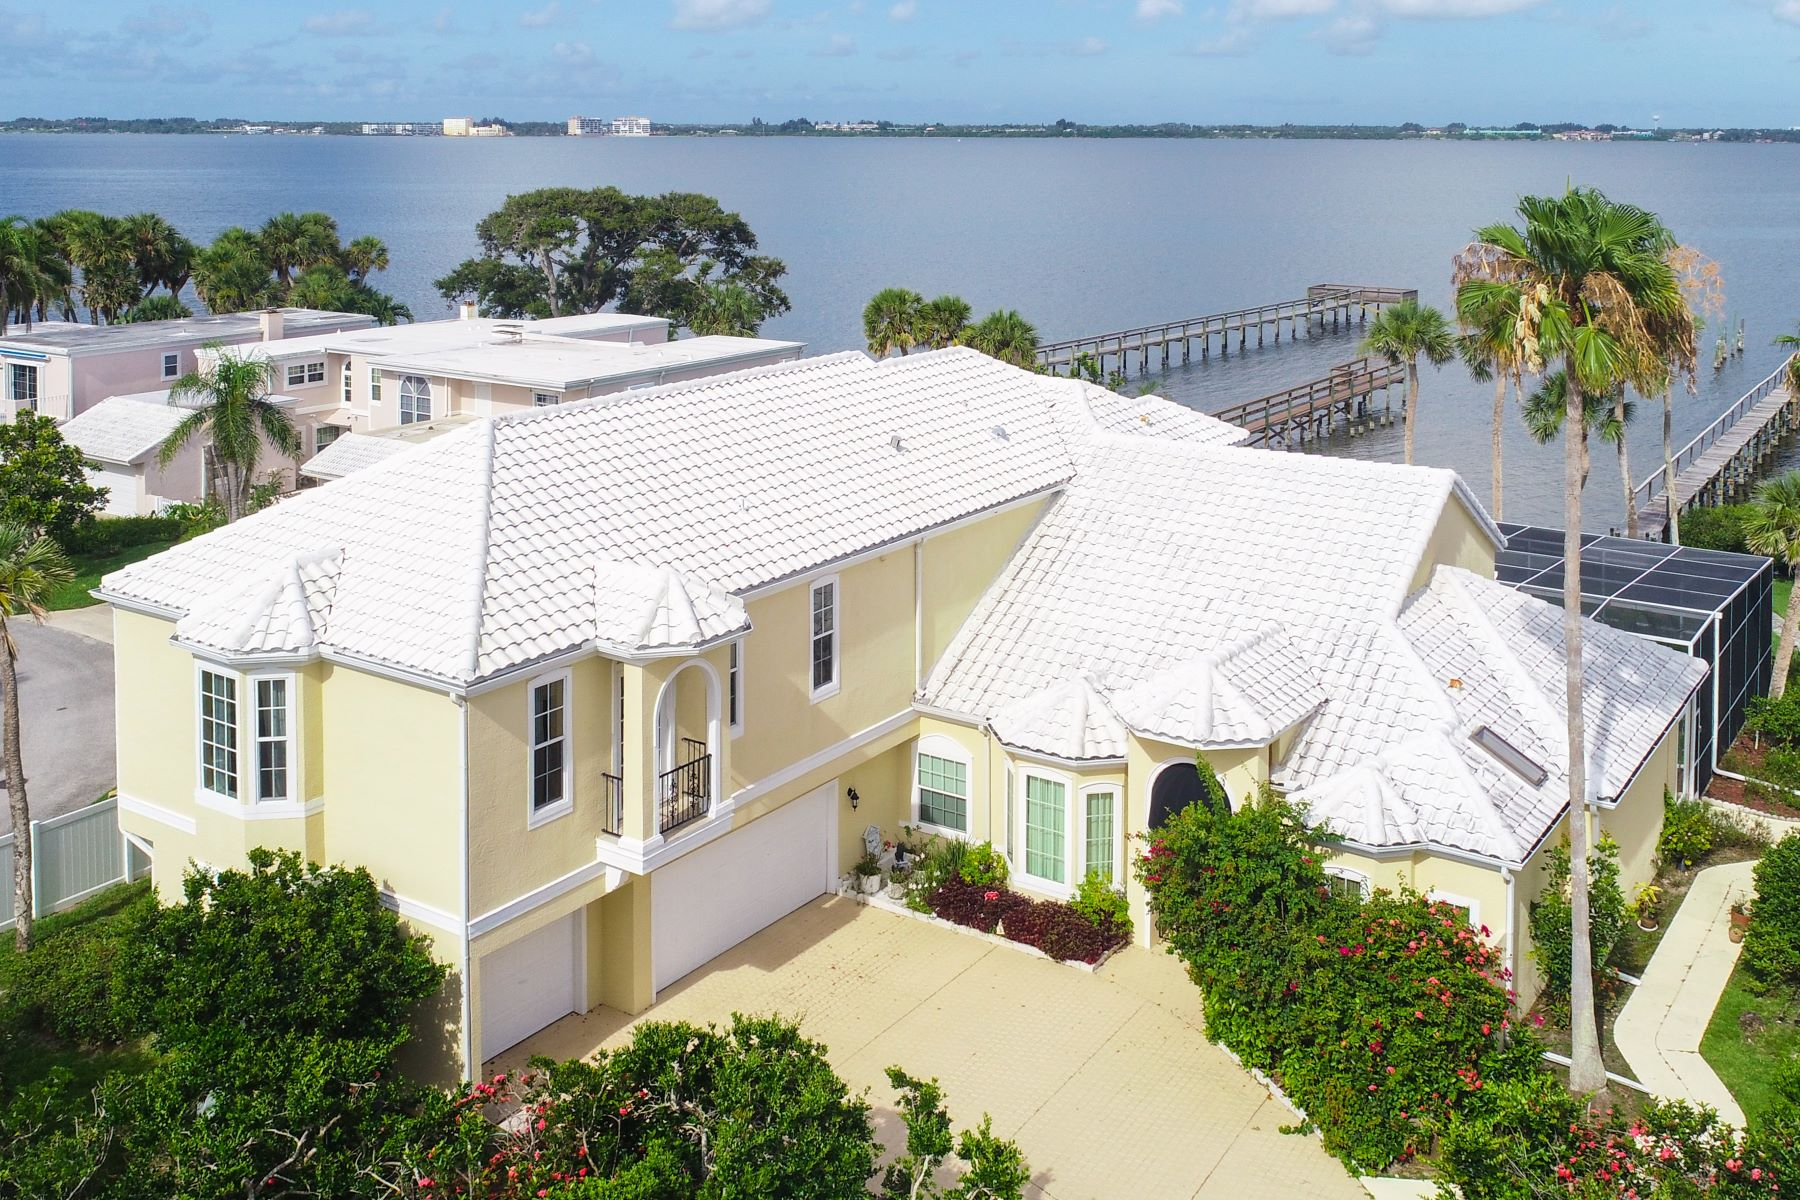 Single Family Homes for Sale at Spacious Direct Riverfront Home 247 Seaview Street Melbourne Beach, Florida 32951 United States